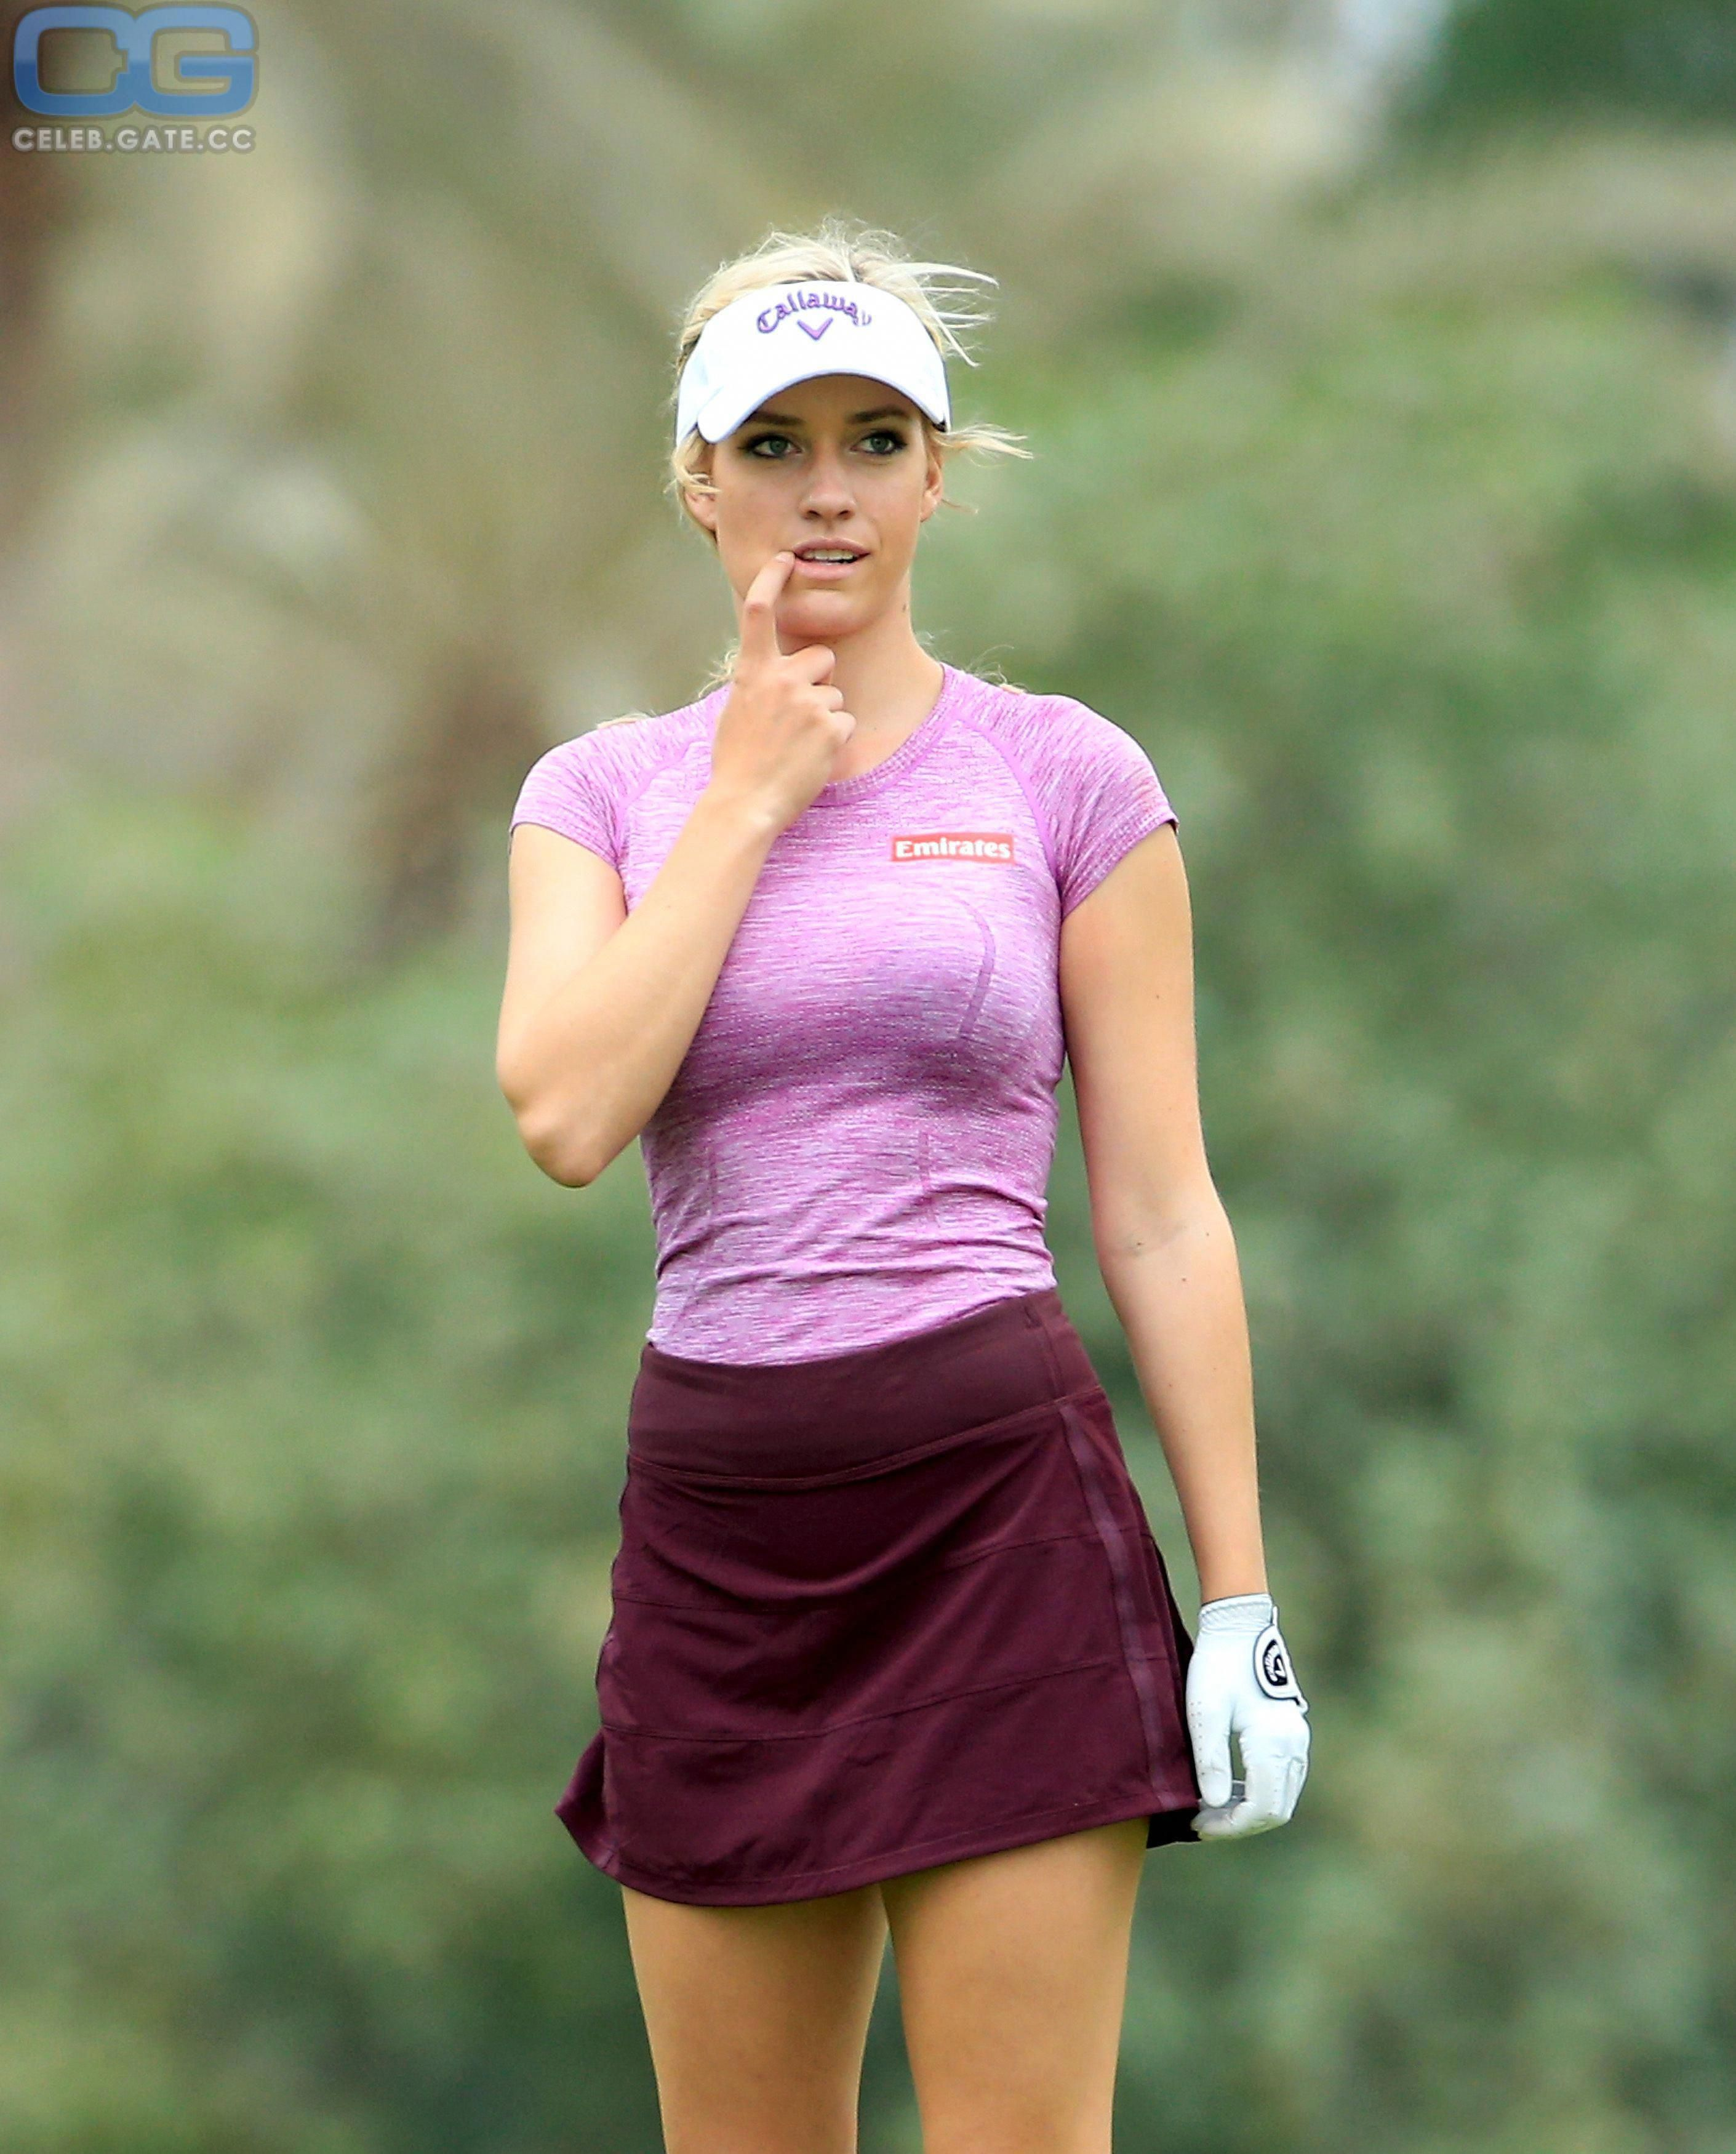 Skorts golf uk betting how to bet on when something will happen